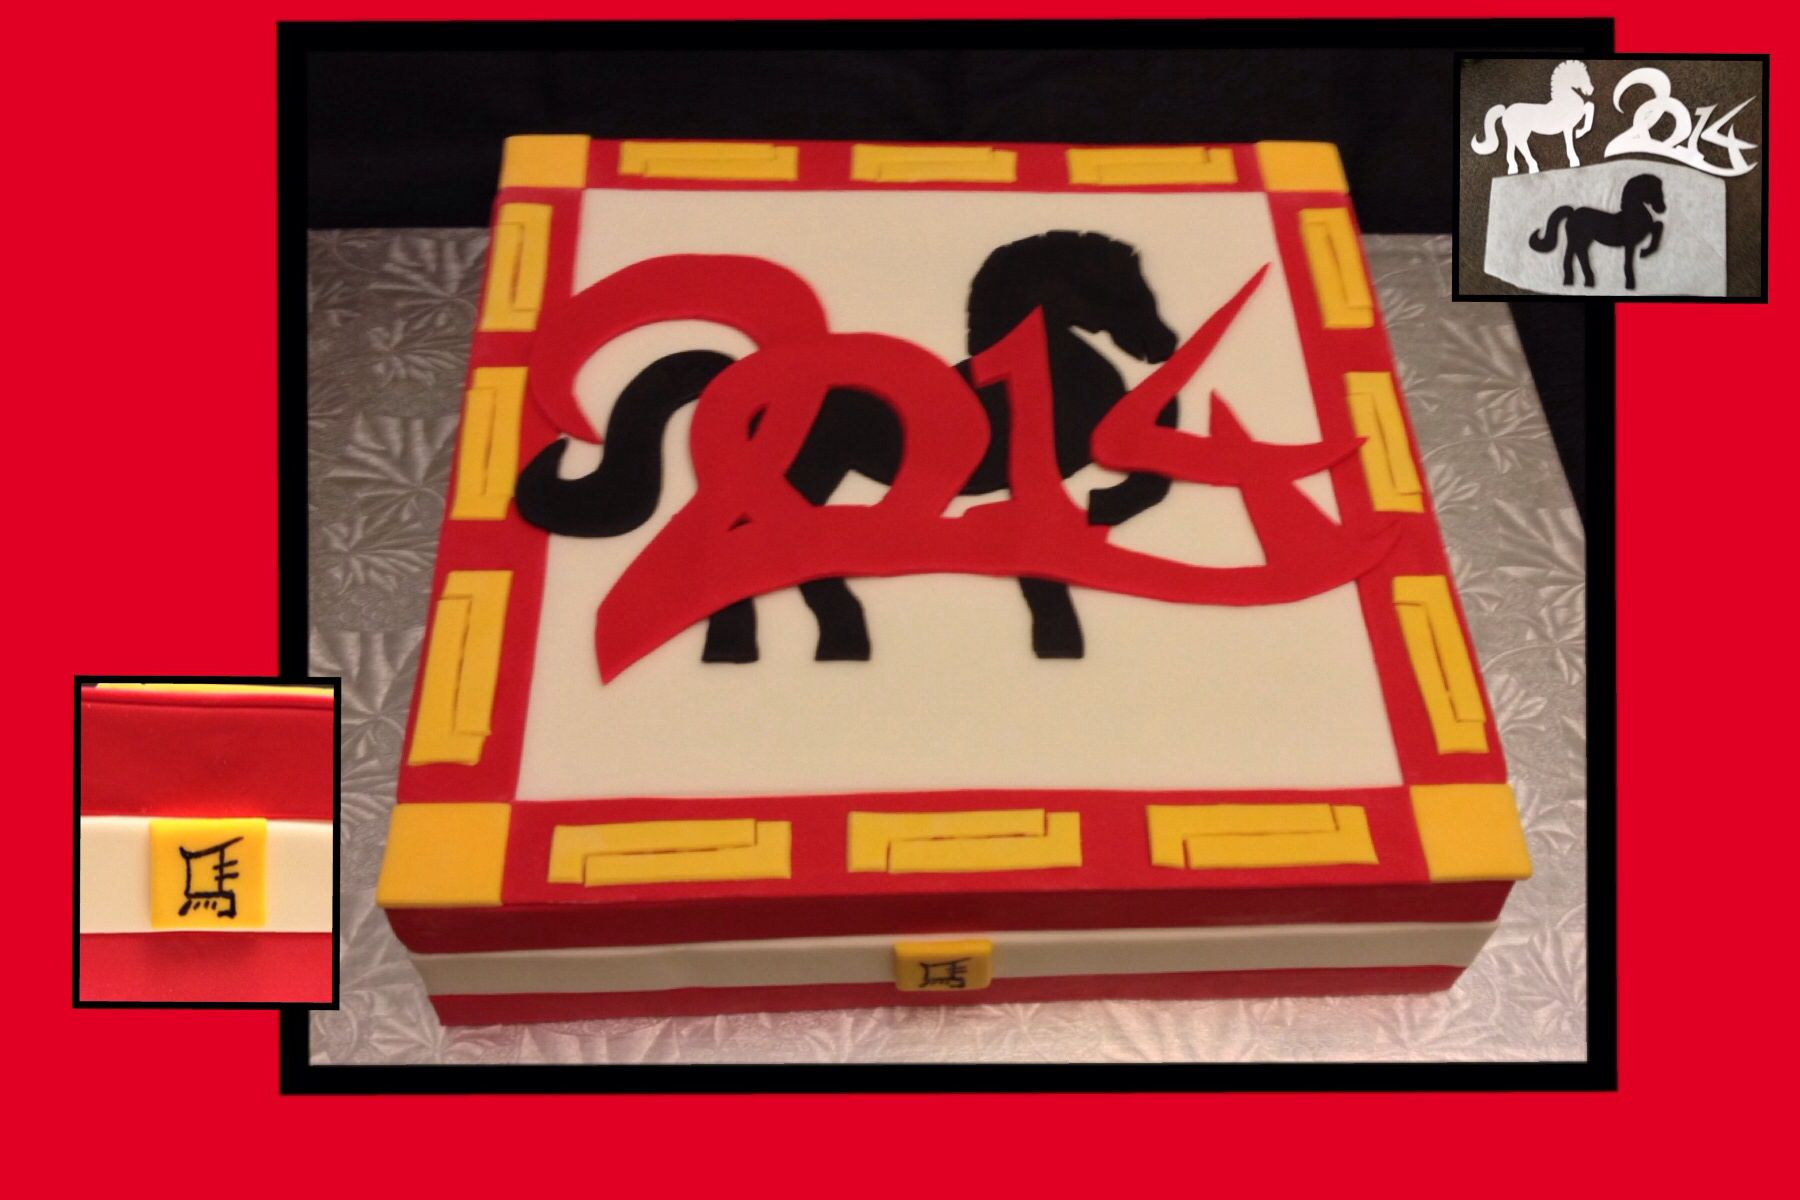 Chinese New Year - 2014 Year of the Horse - Cake Central Inspiration Challenge Entry by Karen Bergeron Baggs